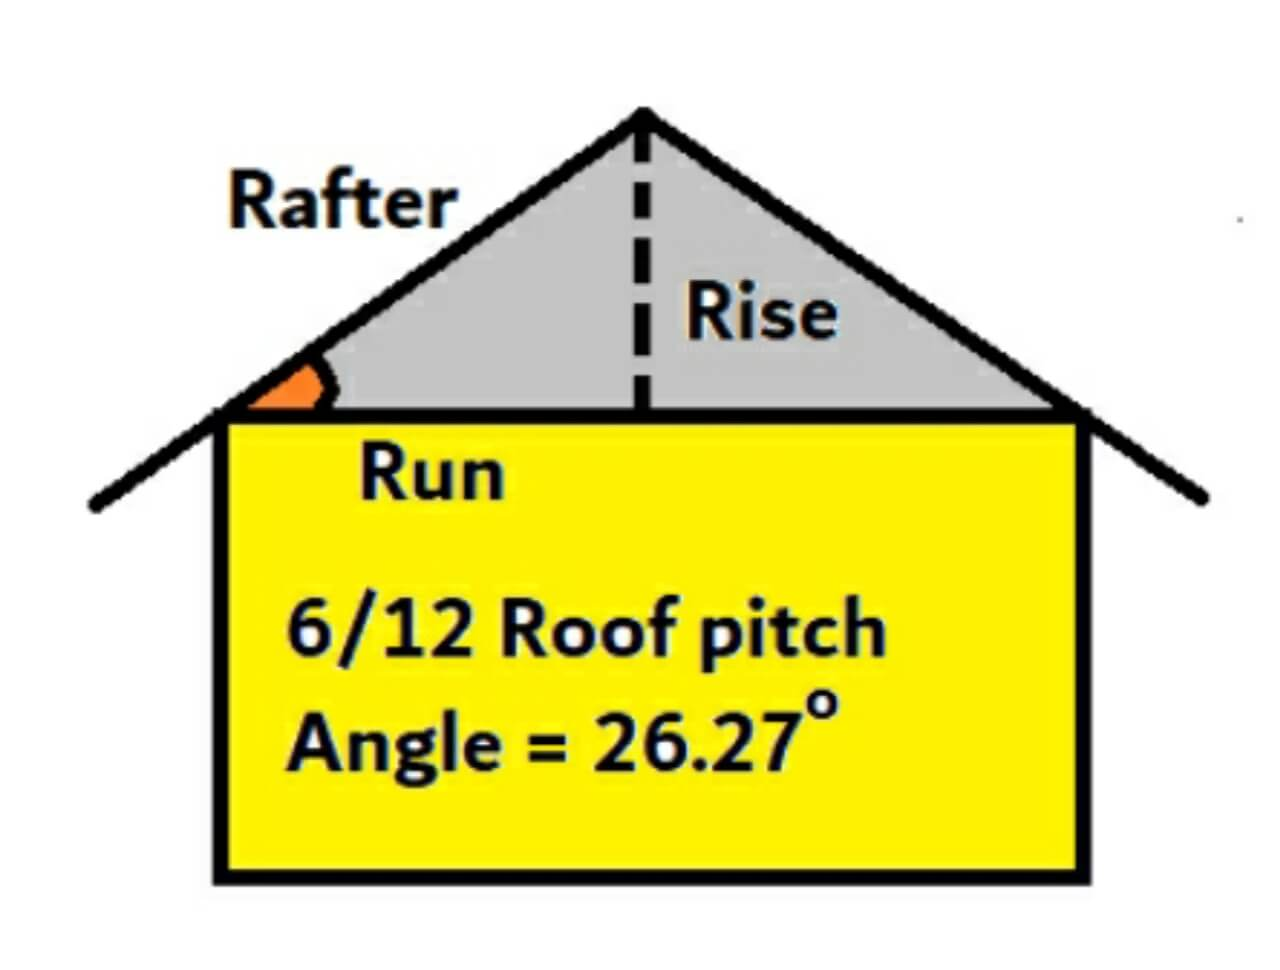 What is a 6 on 12 roof pitch